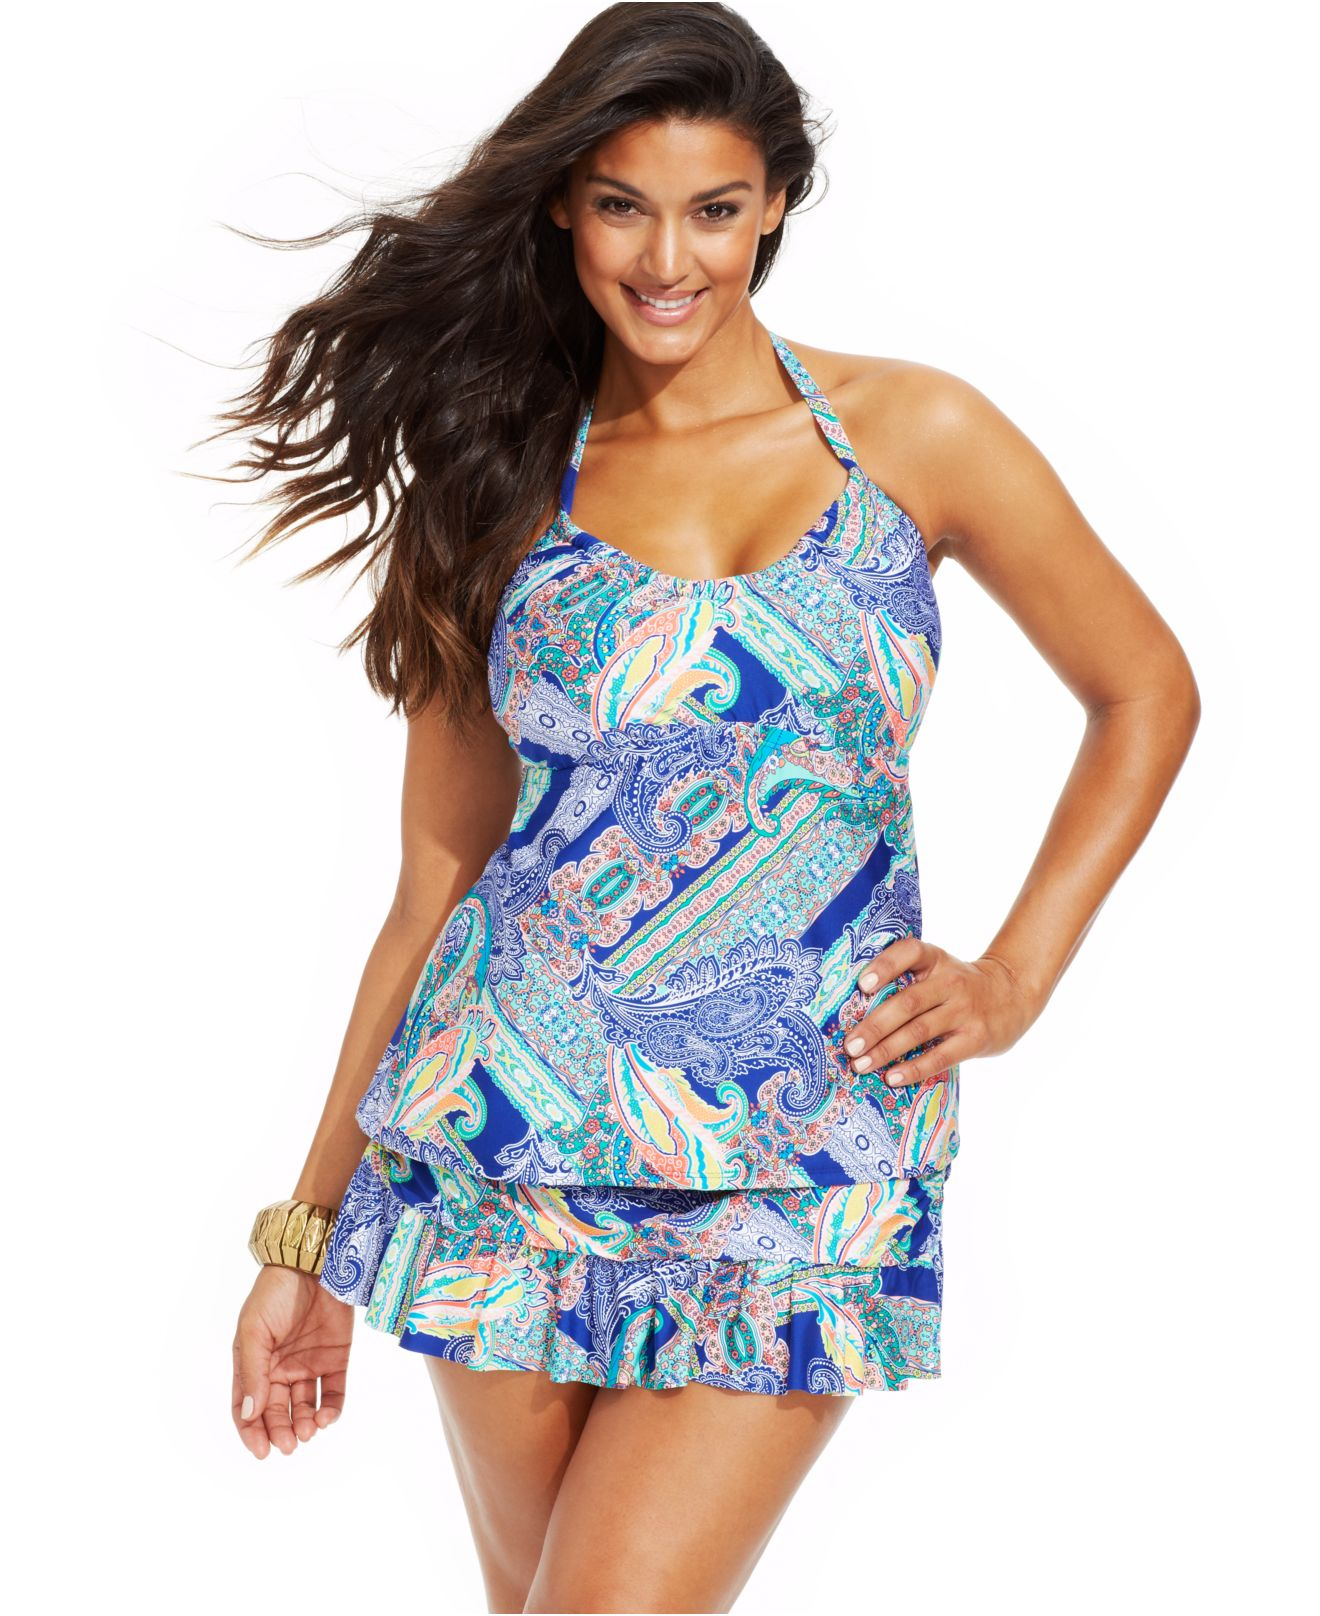 efa0c730290 Lyst - Kenneth Cole Reaction Plus Size Paisley-Print Halter Tankini ...